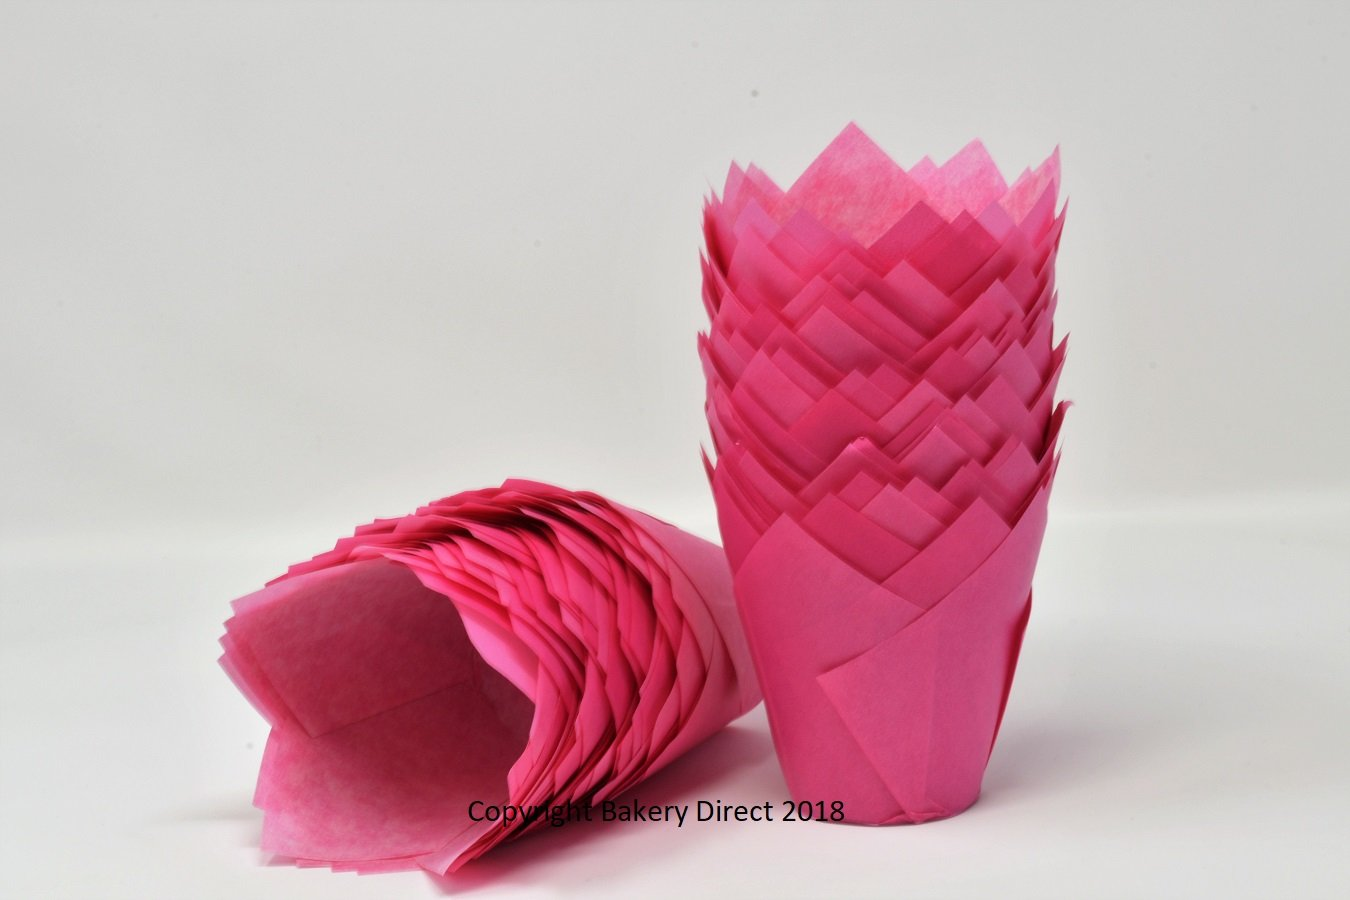 50 Bakery Direct Bright Pink Muffin Tulip Wraps Bakery direct Ltd